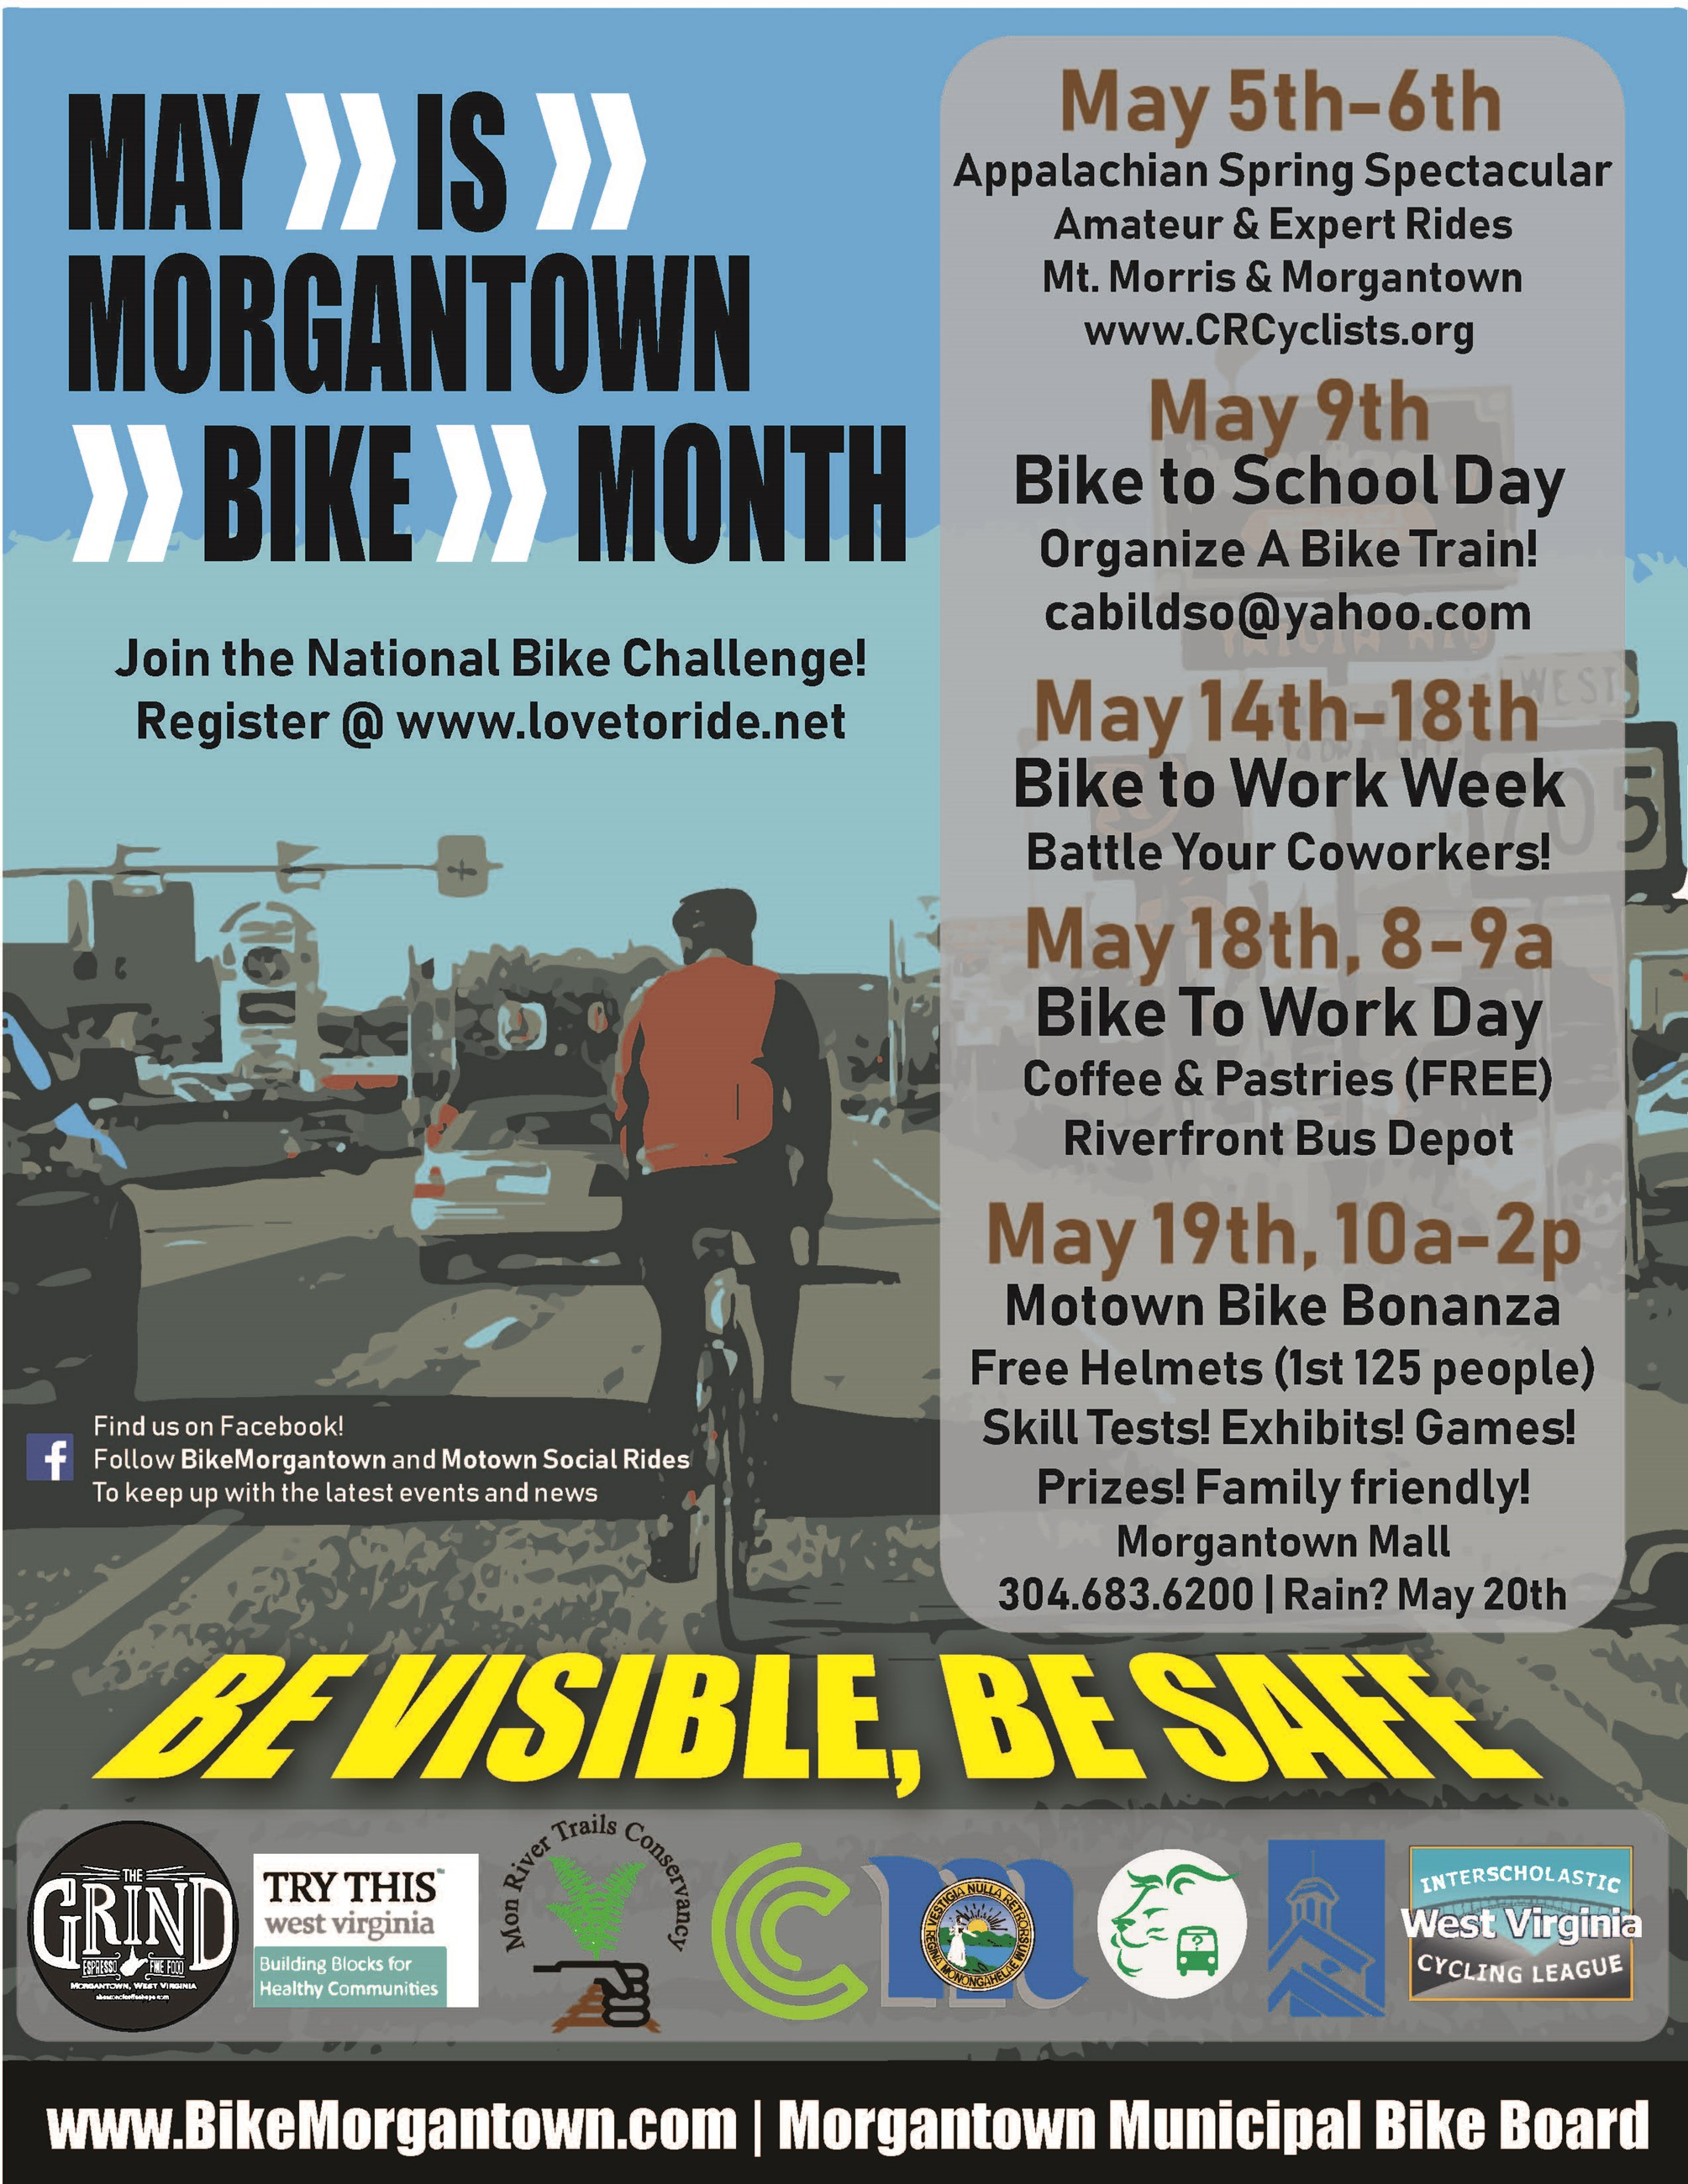 A poster showing bike events scheduled for May 2018.